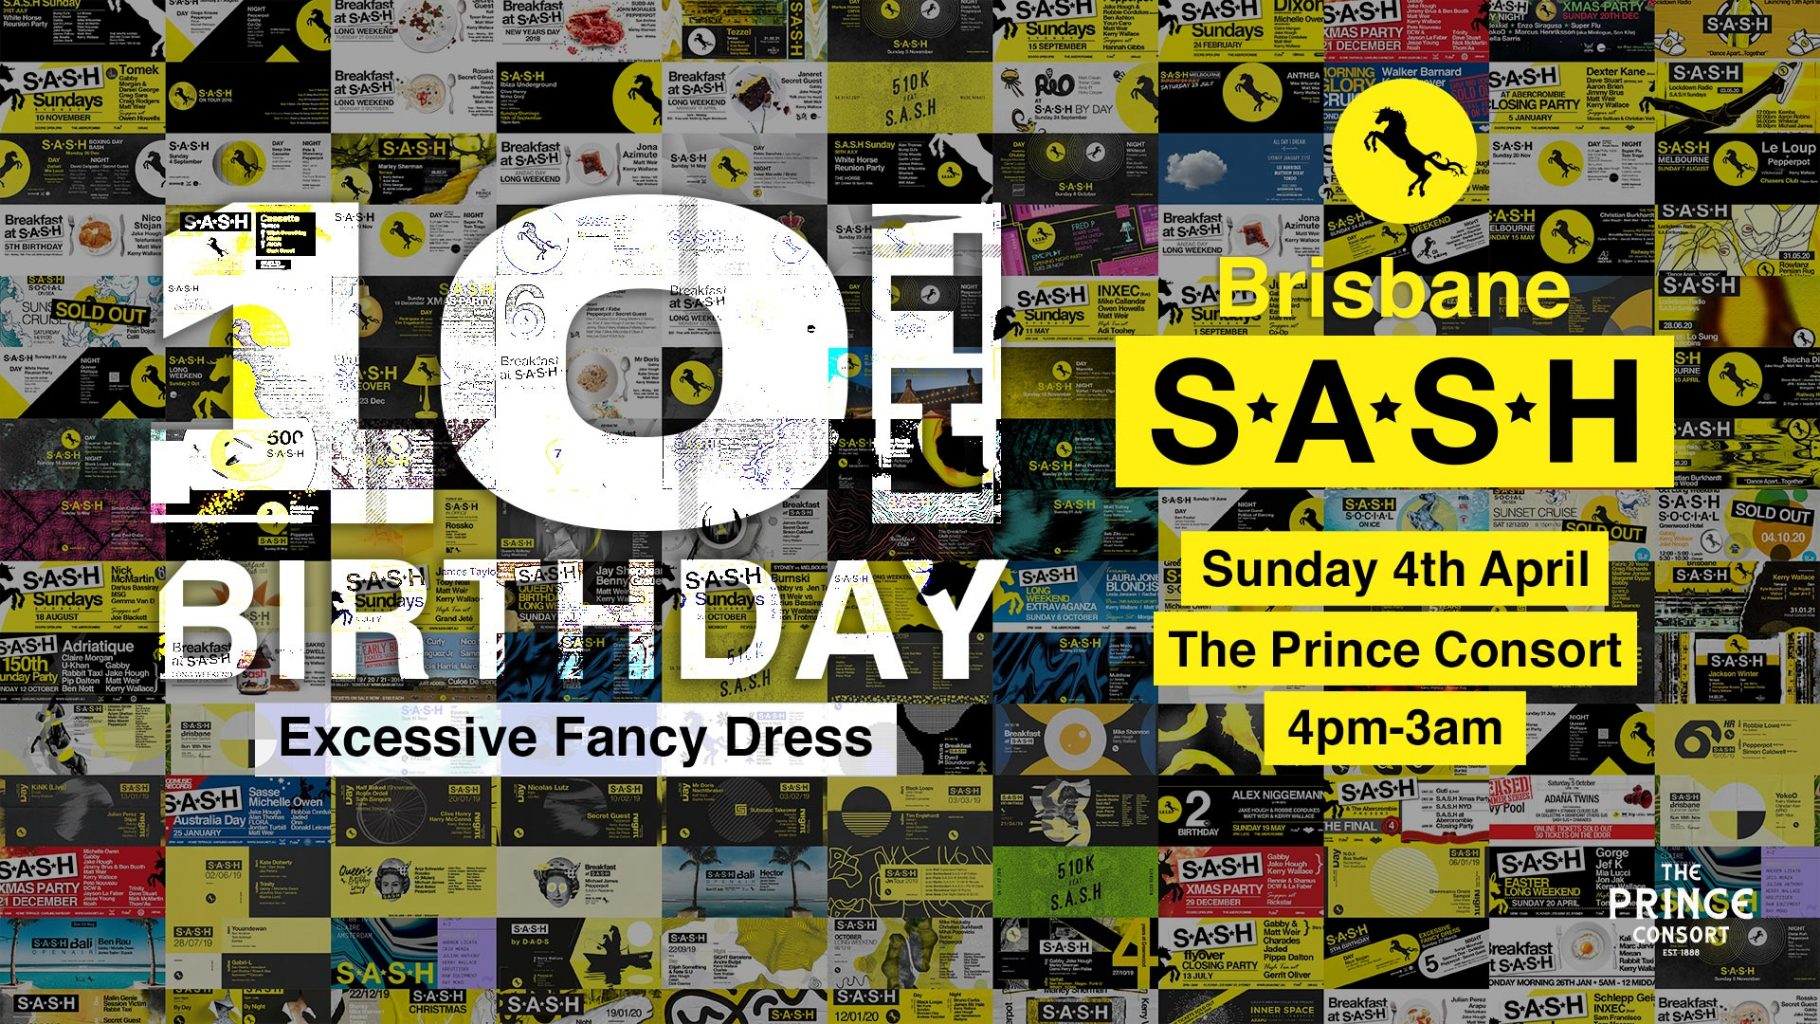 S.A.S.H 10th Birthday